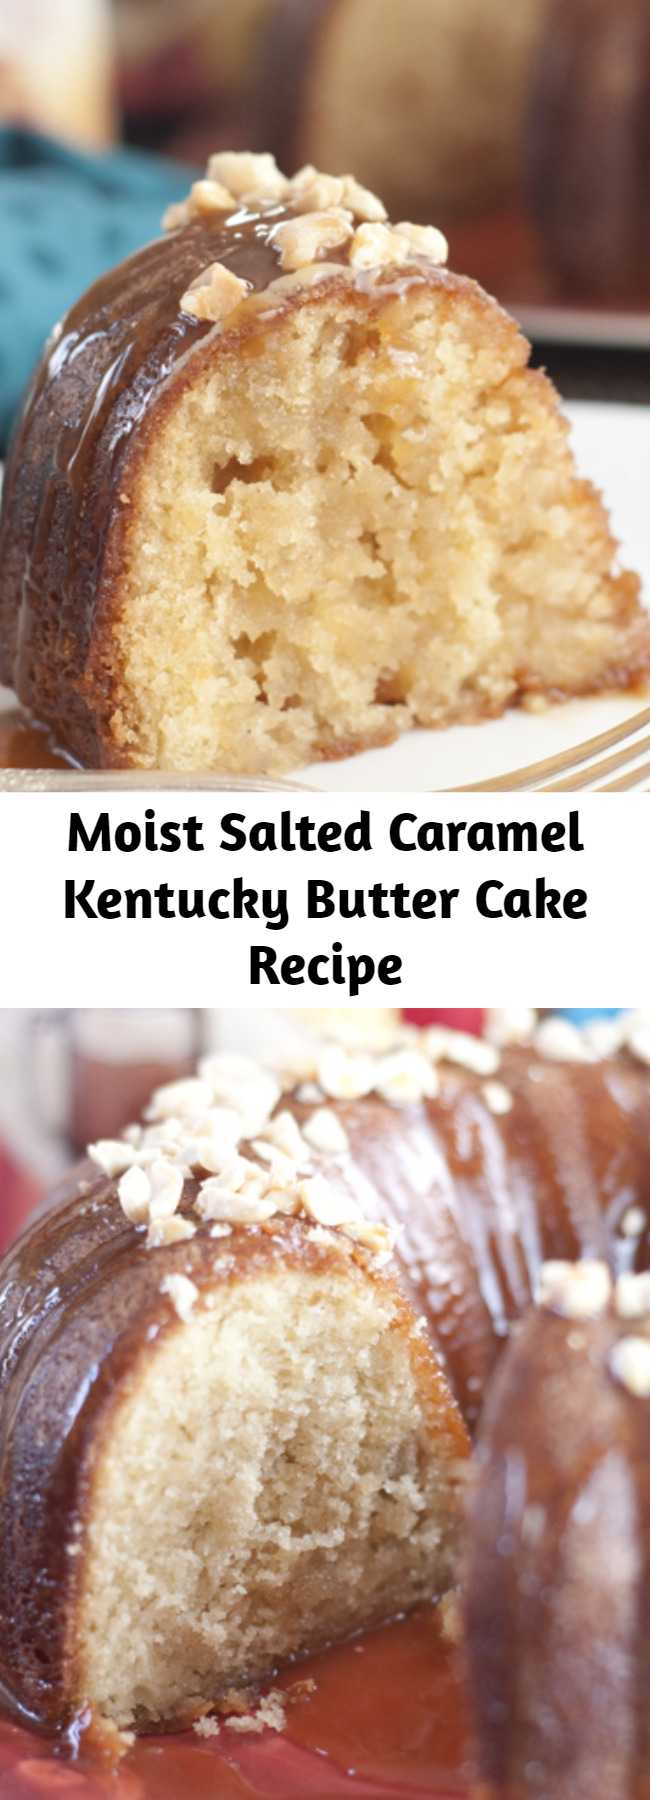 Moist Salted Caramel Kentucky Butter Cake Recipe - Salted Caramel Kentucky Butter Cake is a homemade moist and buttery cake recipe with a caramel butter sauce that is rich, delicious, and soaks into the cake!